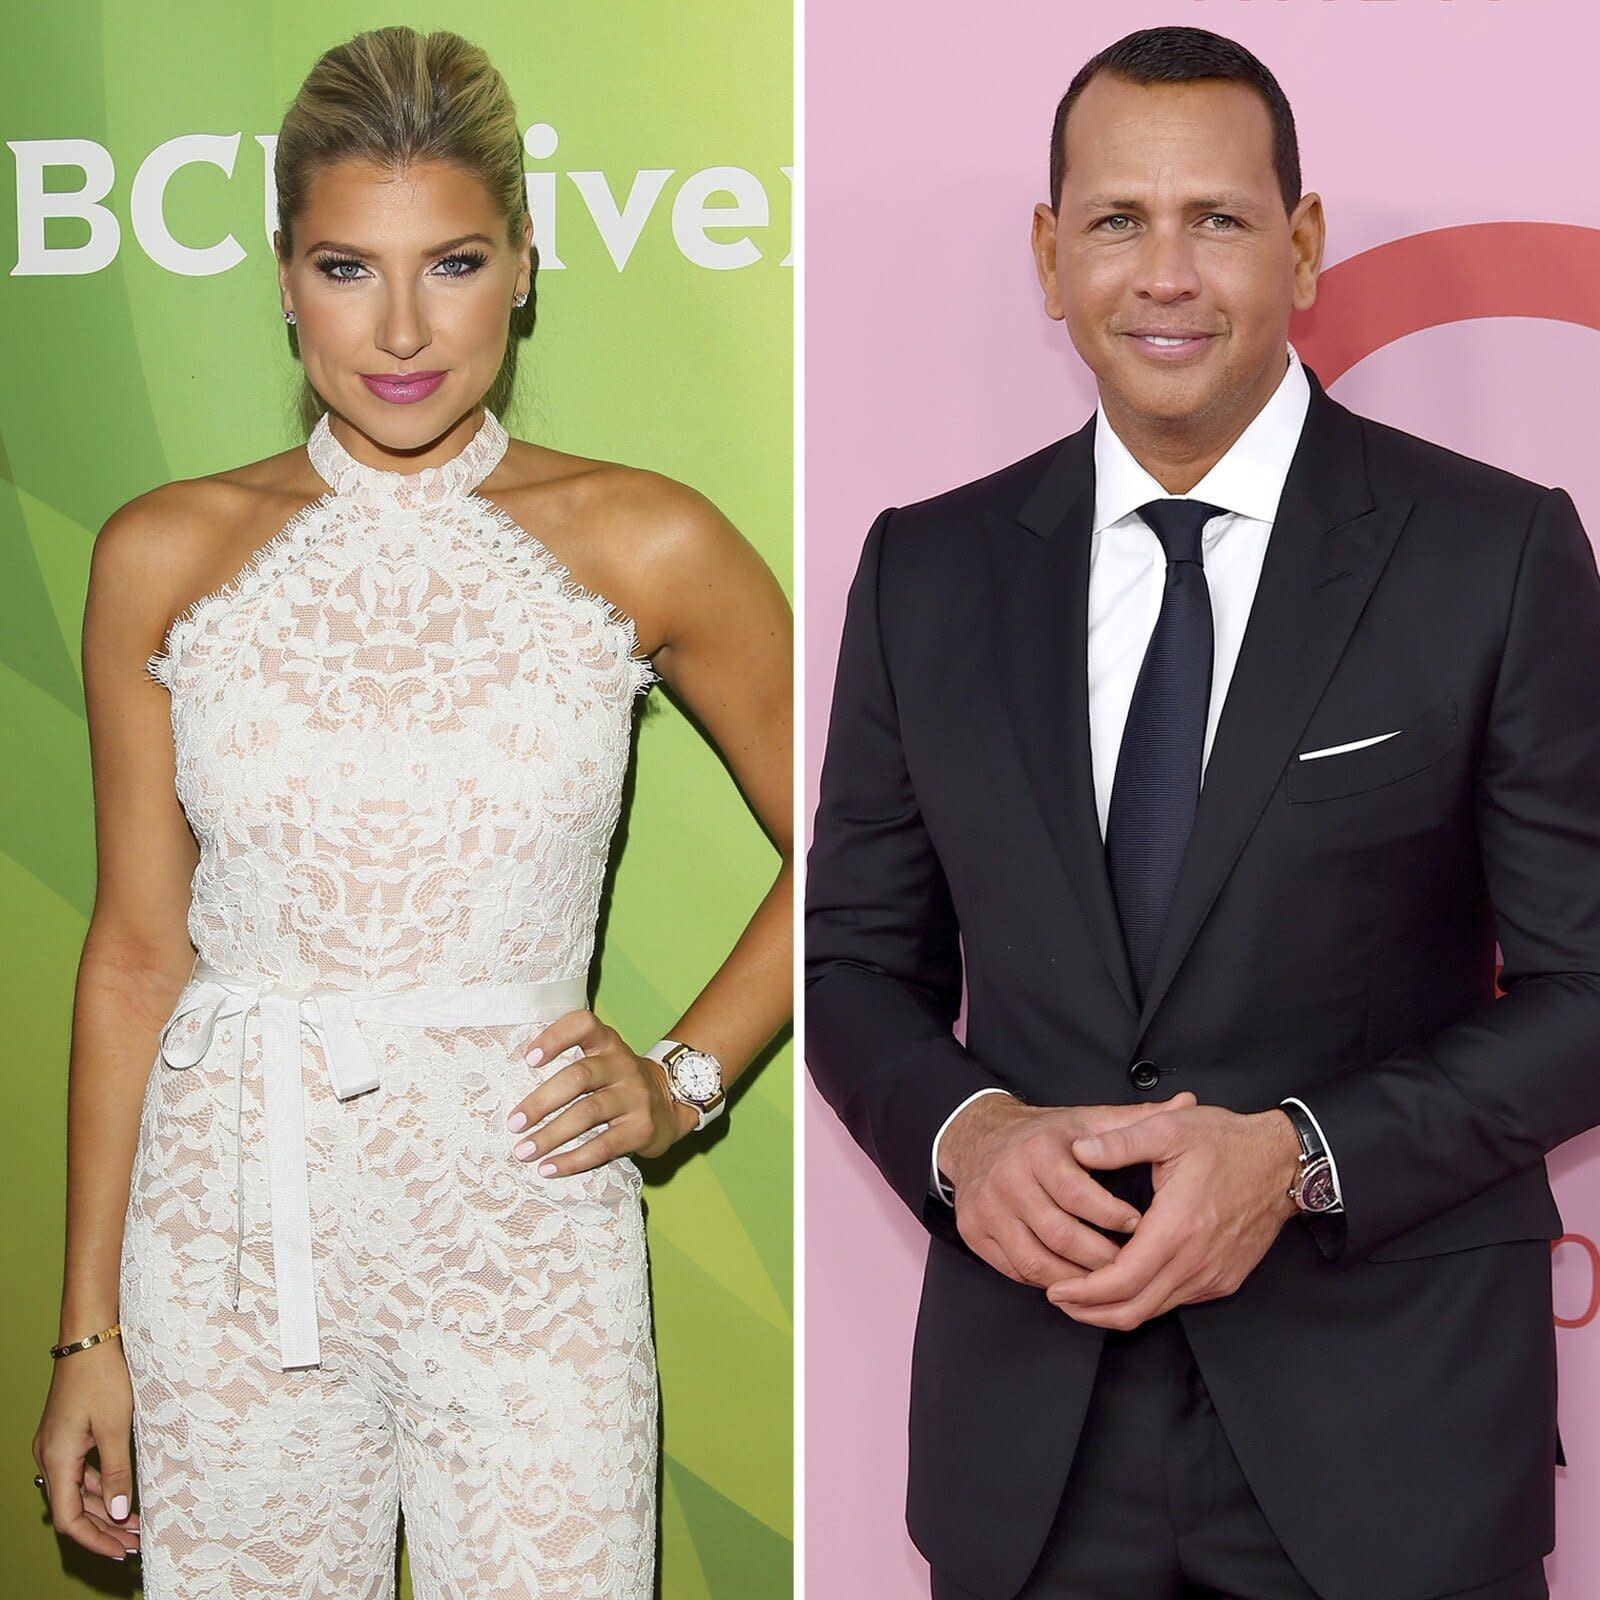 Jennifer Lopez has finalized her relationship with Alex Rodriguez on the networks!